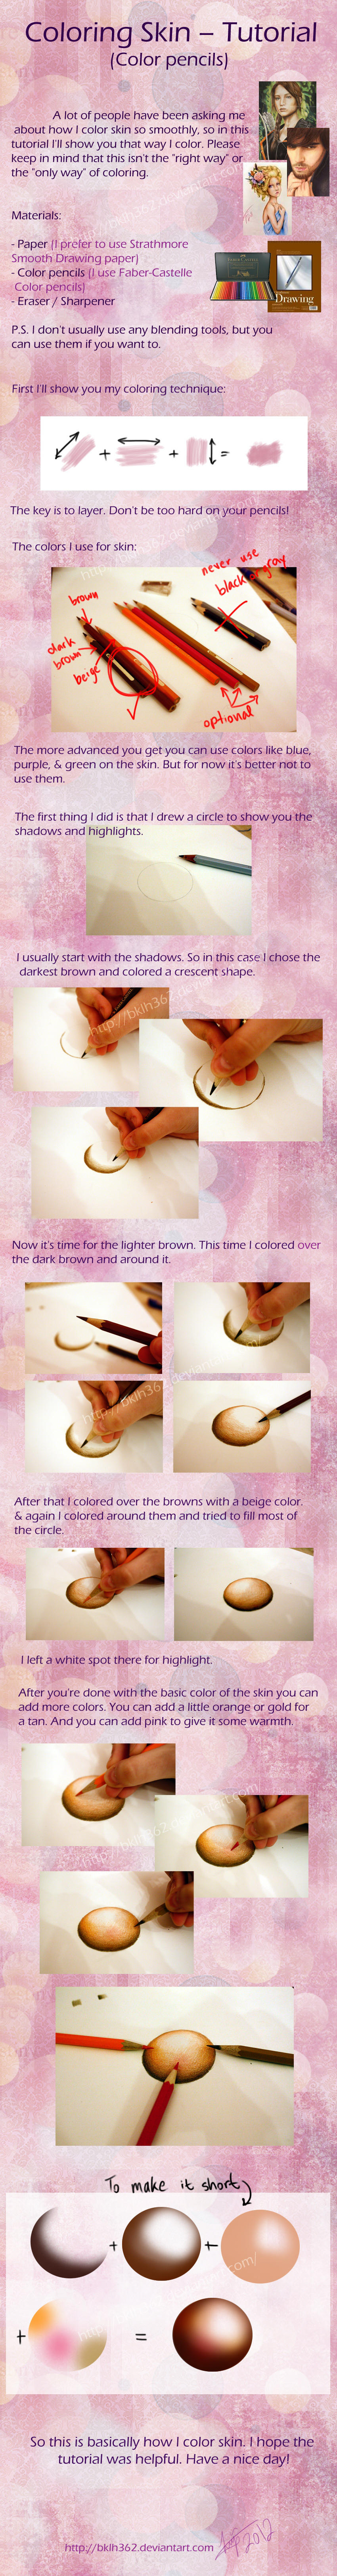 Coloring Skin (Color pencils tutorial) by BKLH362 on DeviantArt